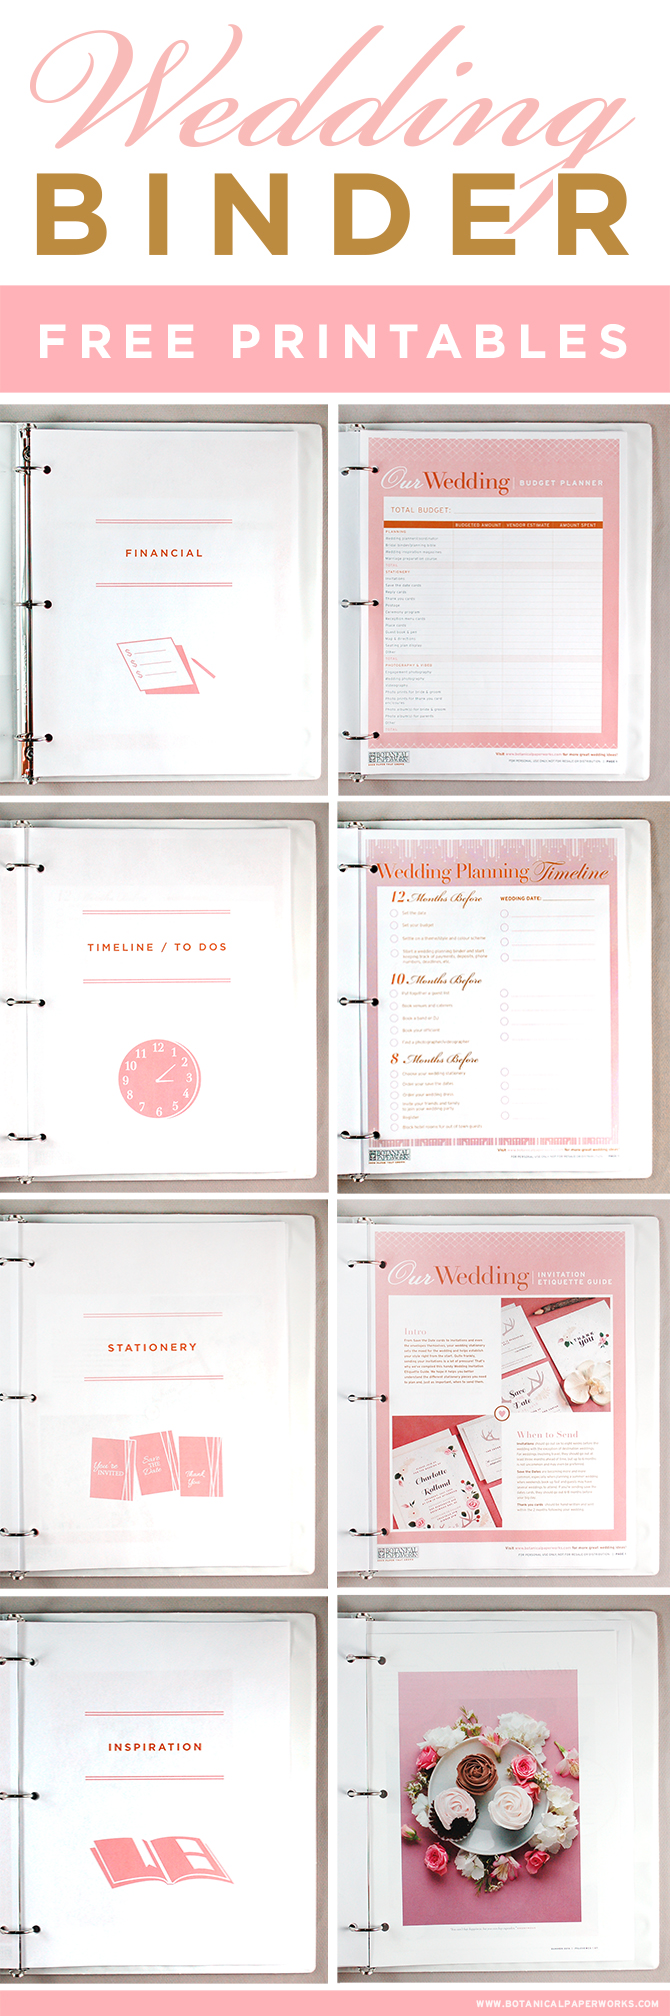 7 Images of Wedding Planner Binder Free Printables